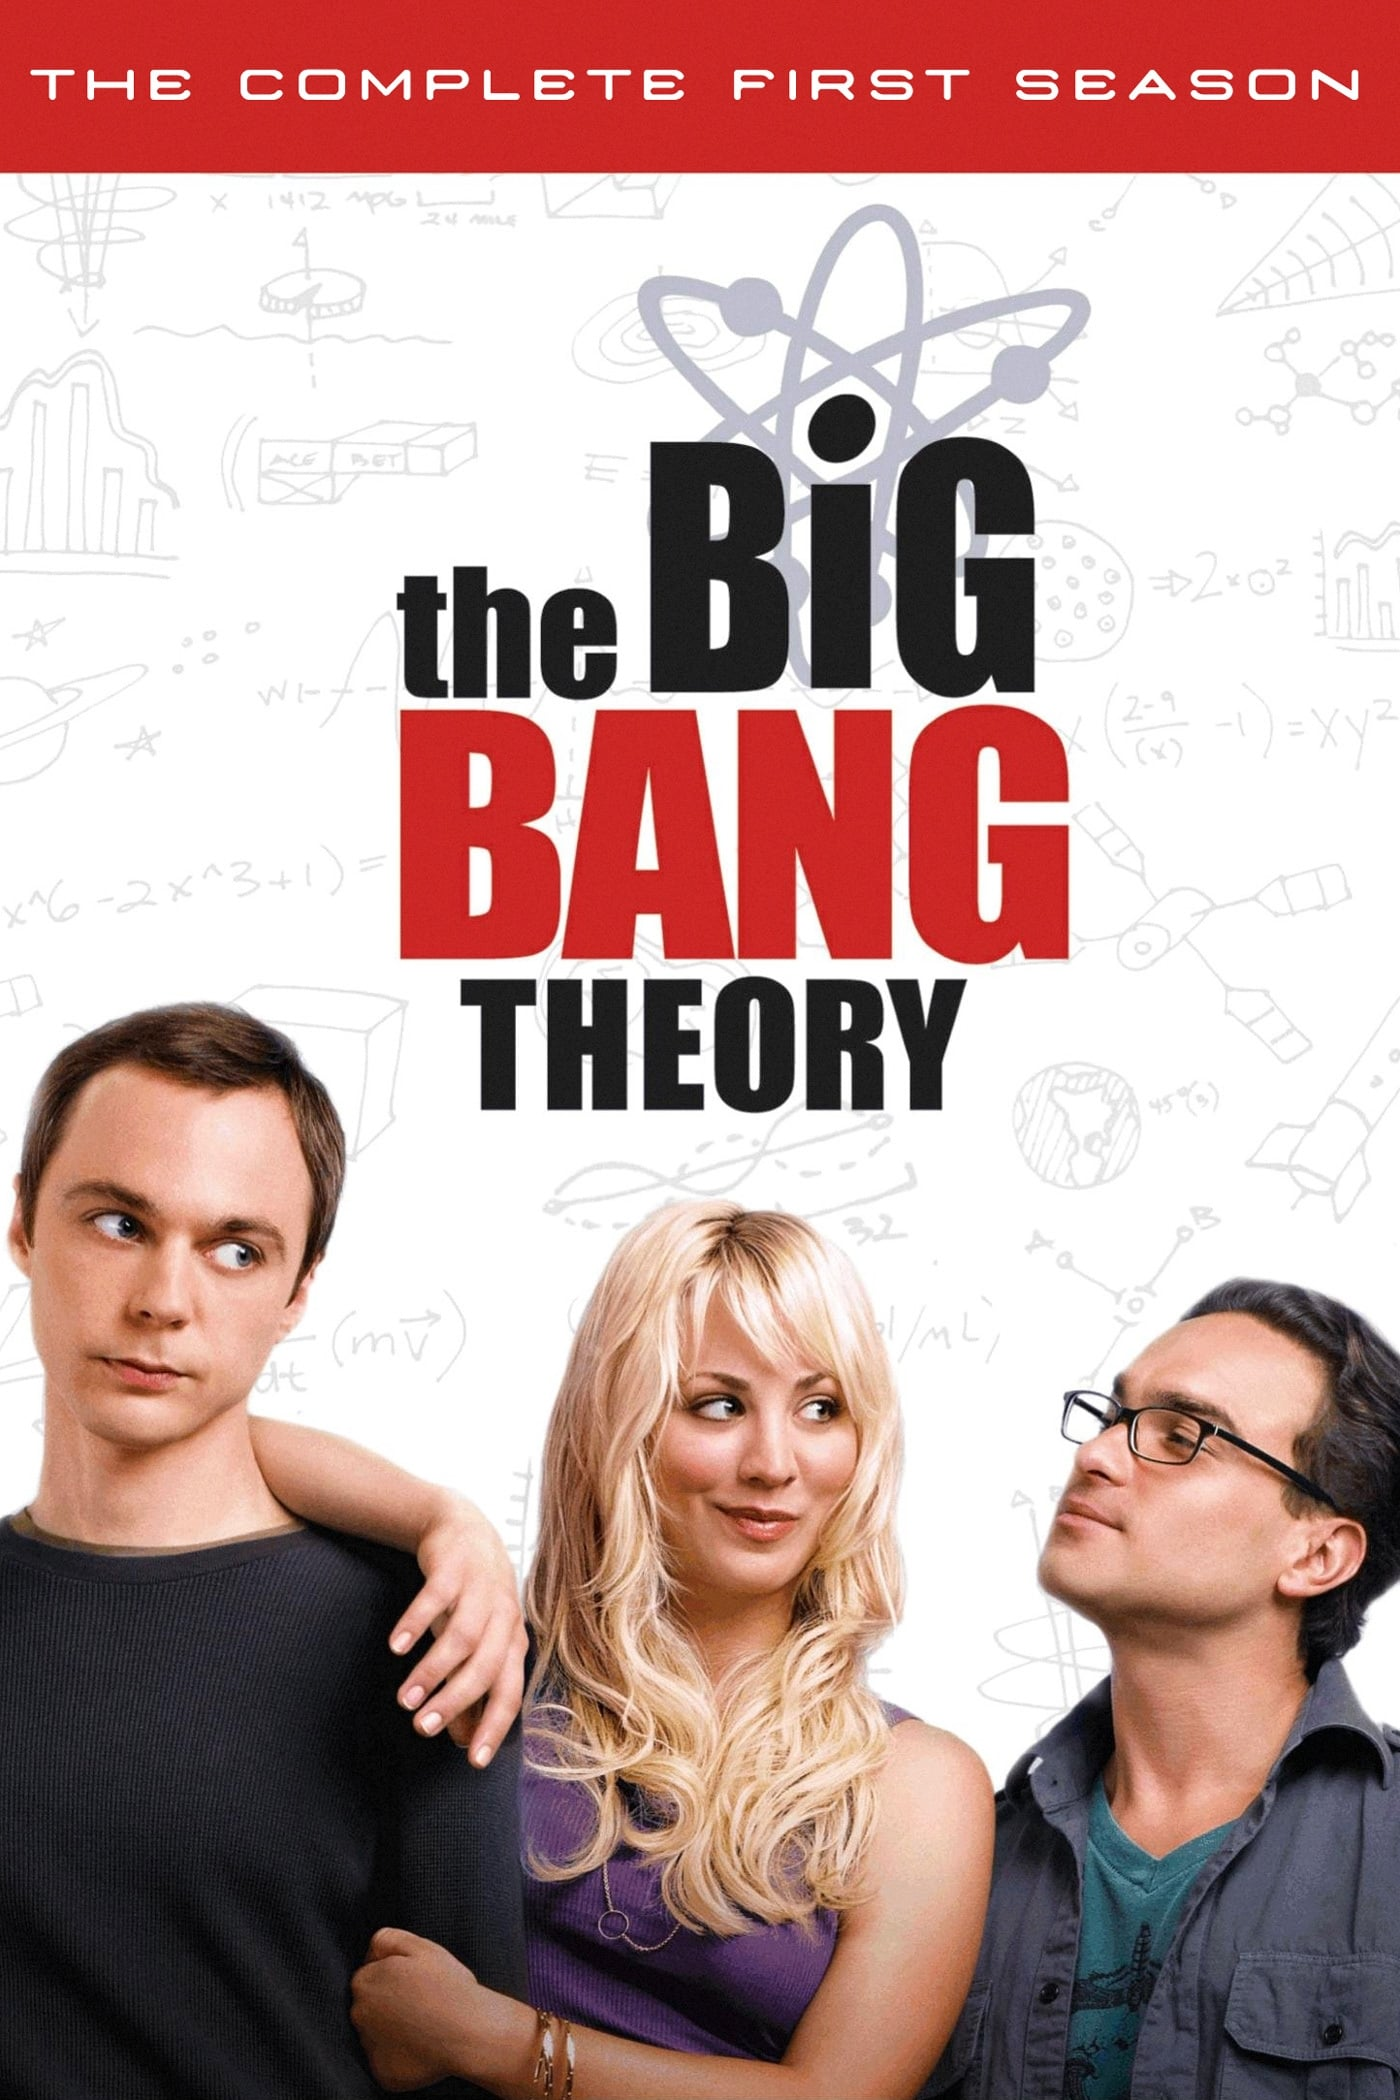 http://prediksisgp.com/the-big-bang-theory-1a-temporada-2007-bluray-720p-dual-audio-torrent-download/